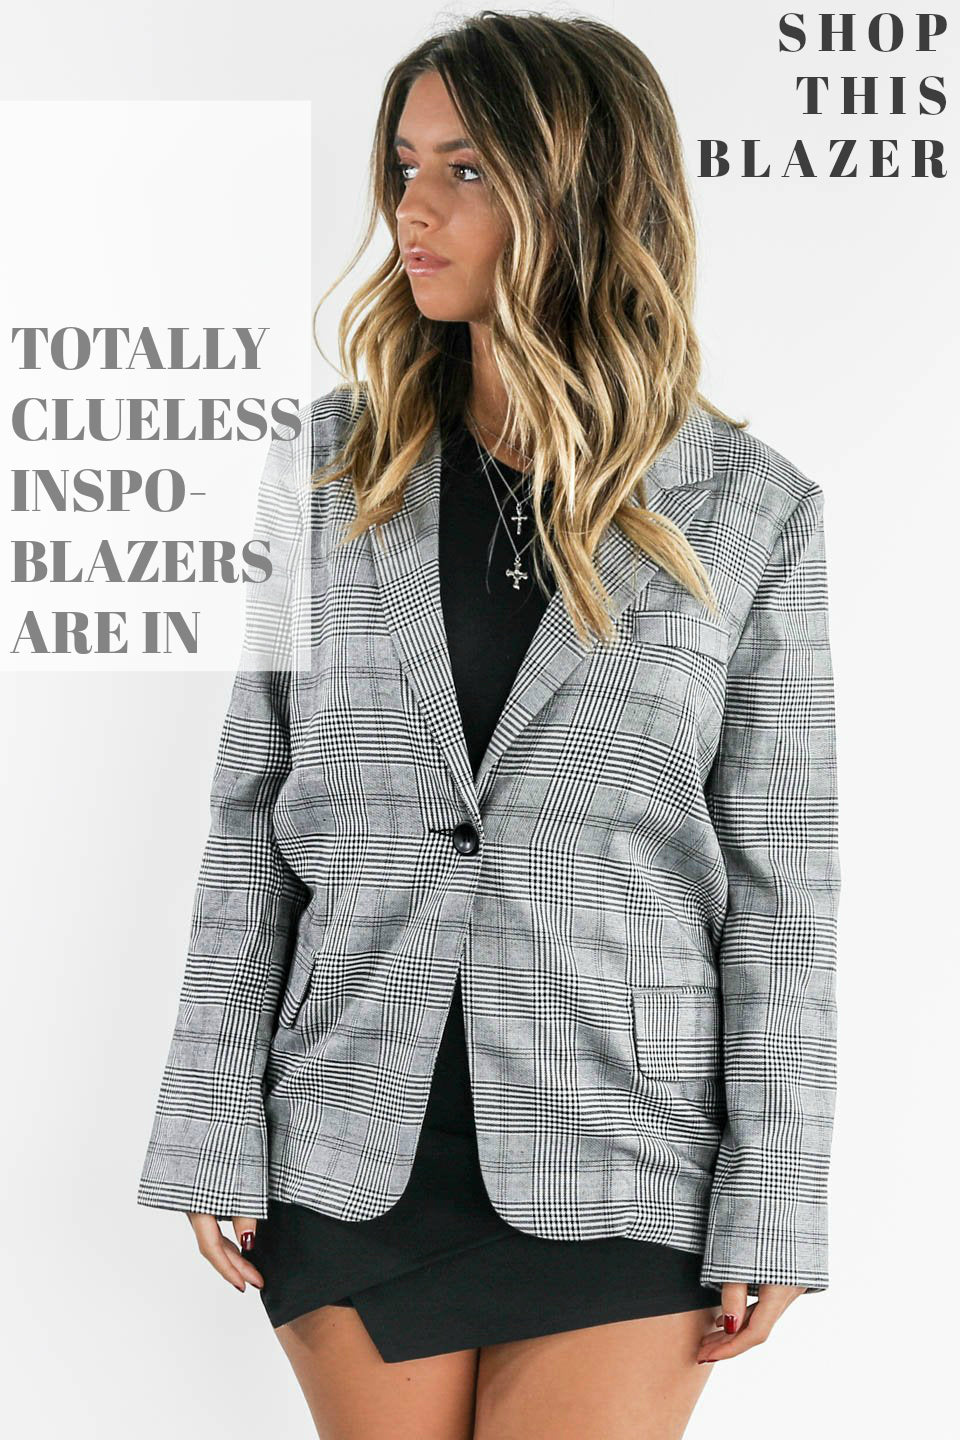 TOTALLY CLUELESS - The Blazer Trend!